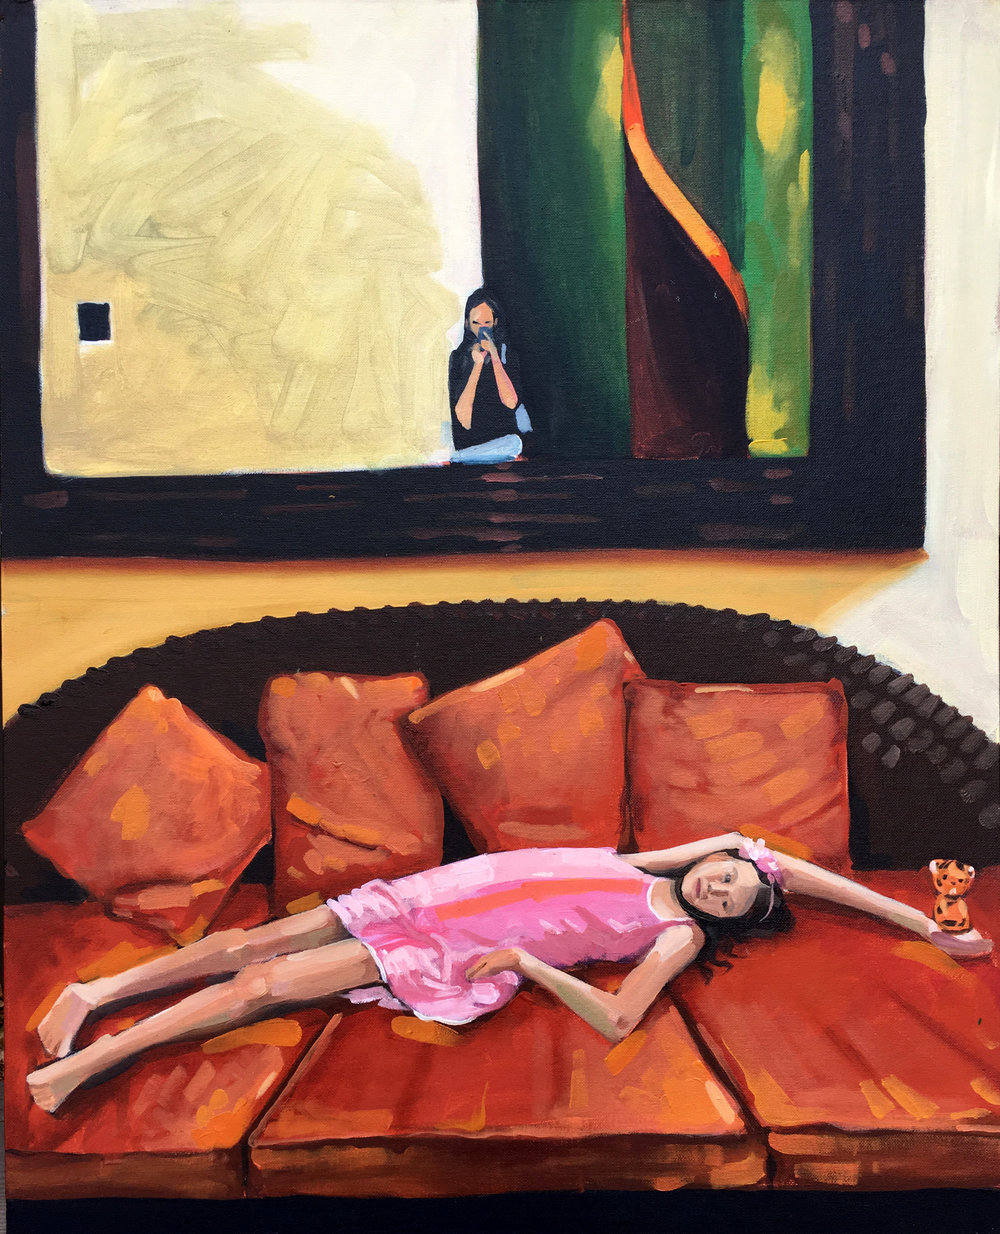 Finished this painting of Tess laying on a couch with a shot of her mom in the mirror taking a picture. I like this composition.